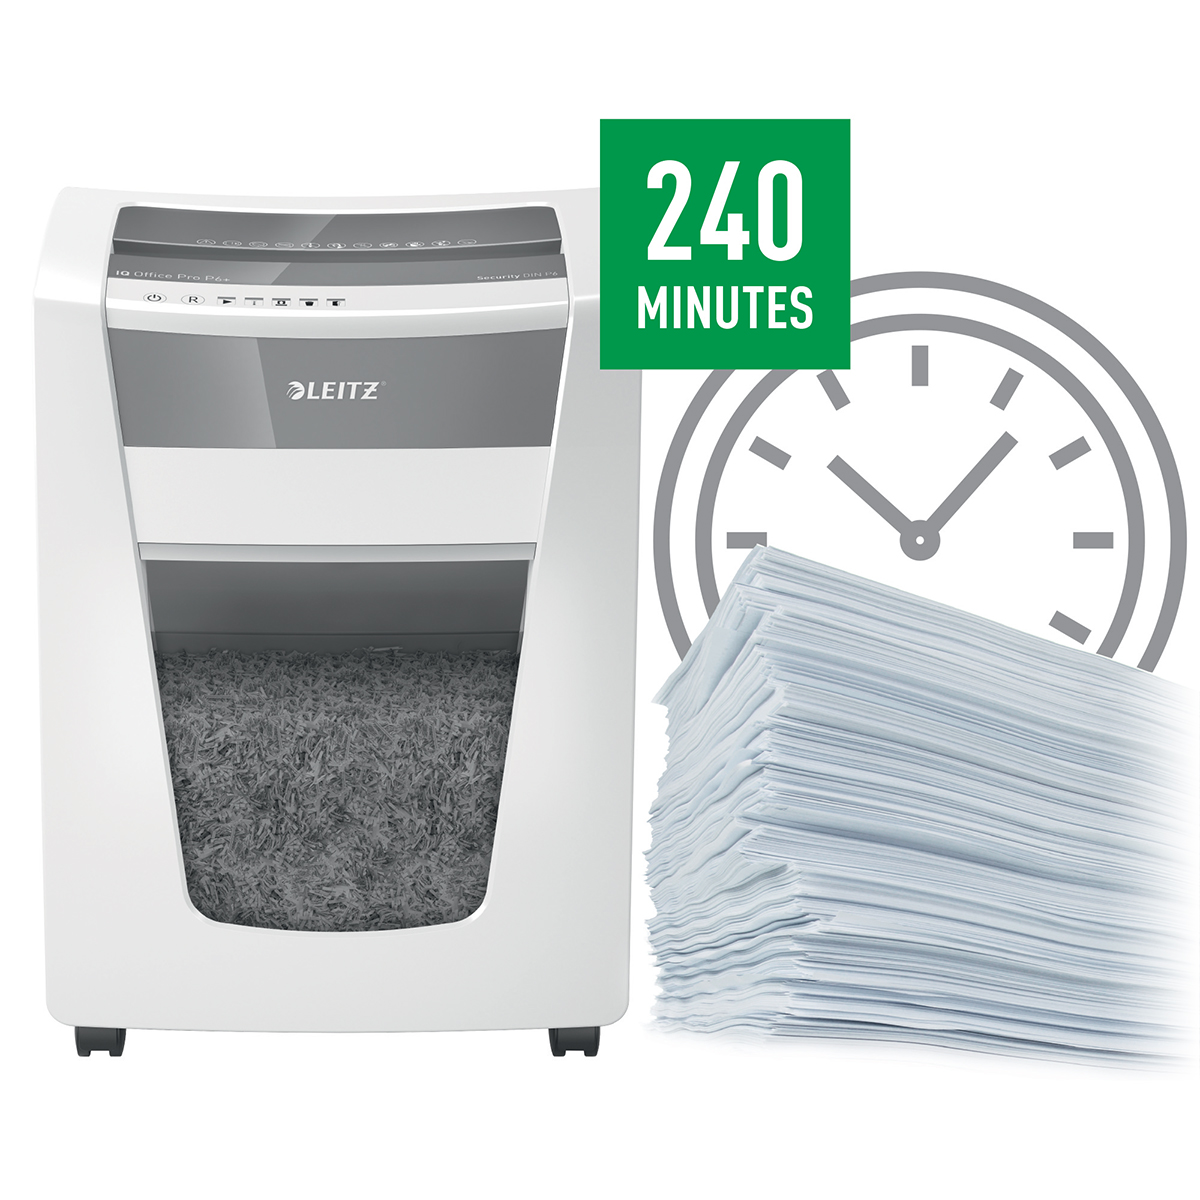 Leitz IQ Office Pro Super Micro Cut Shredder P6